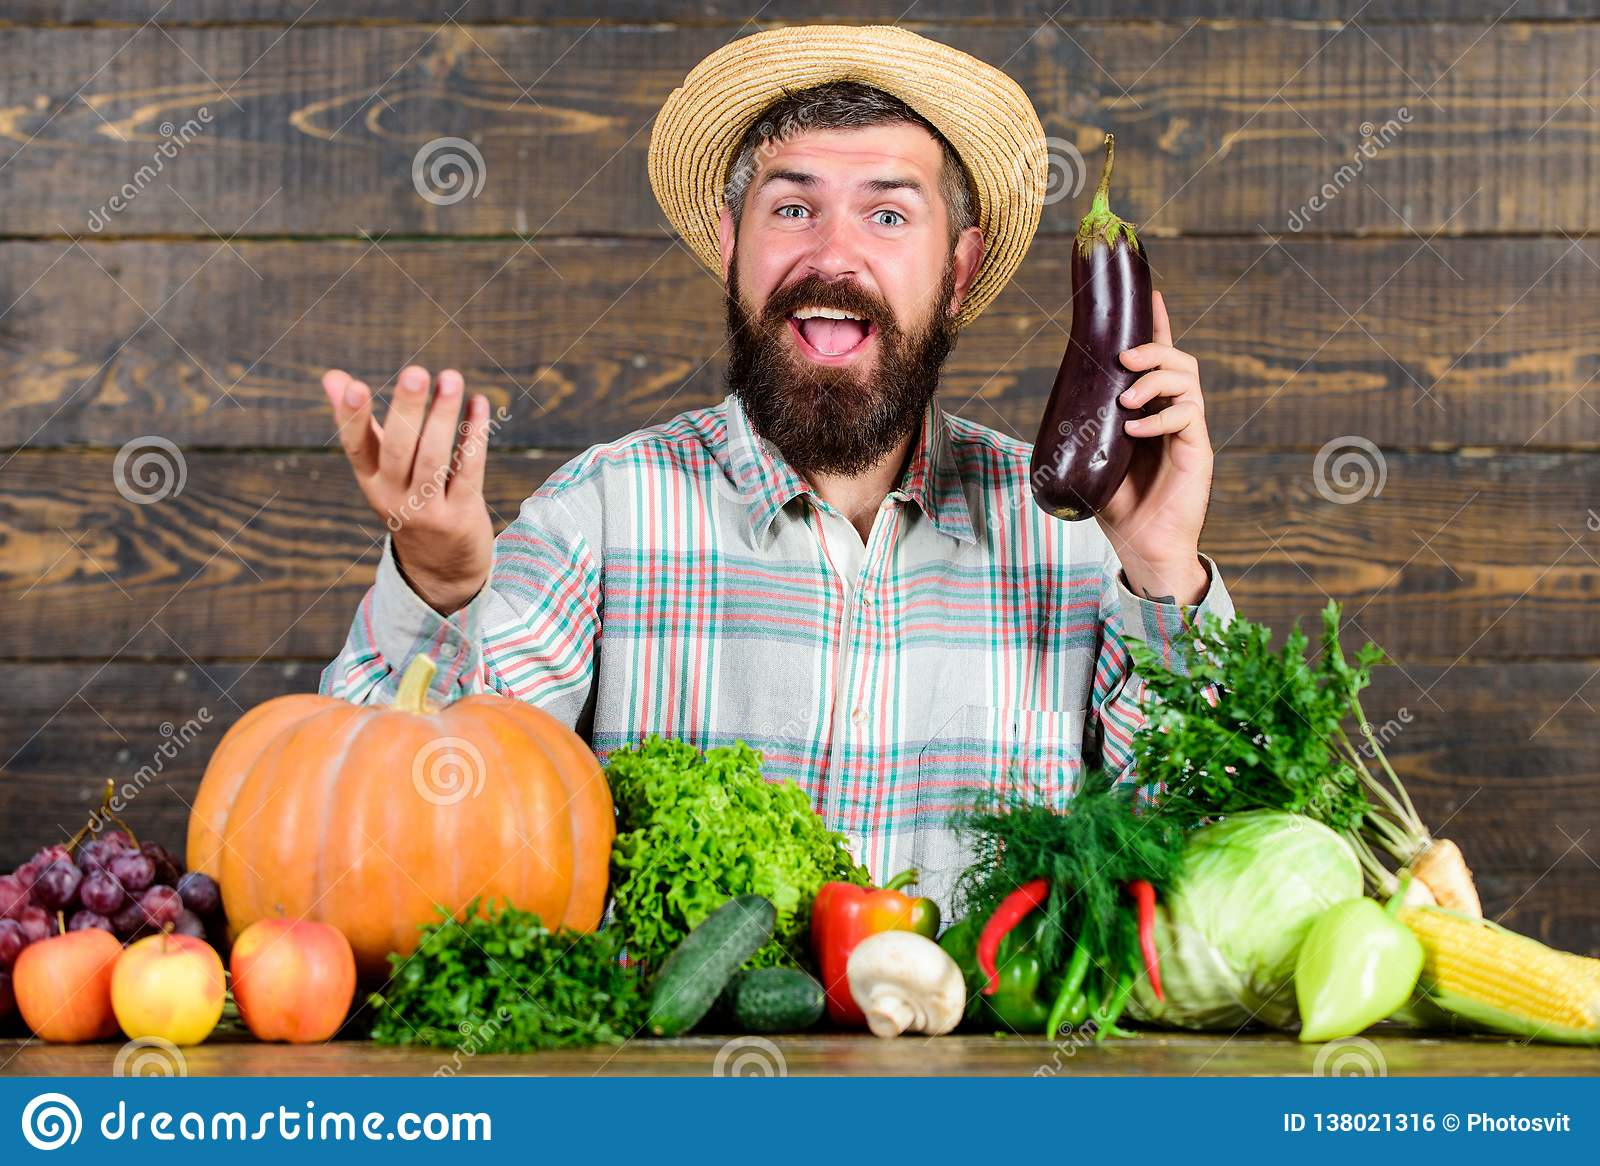 Organic Horticulture Concept  Farmer With Organic Vegetables